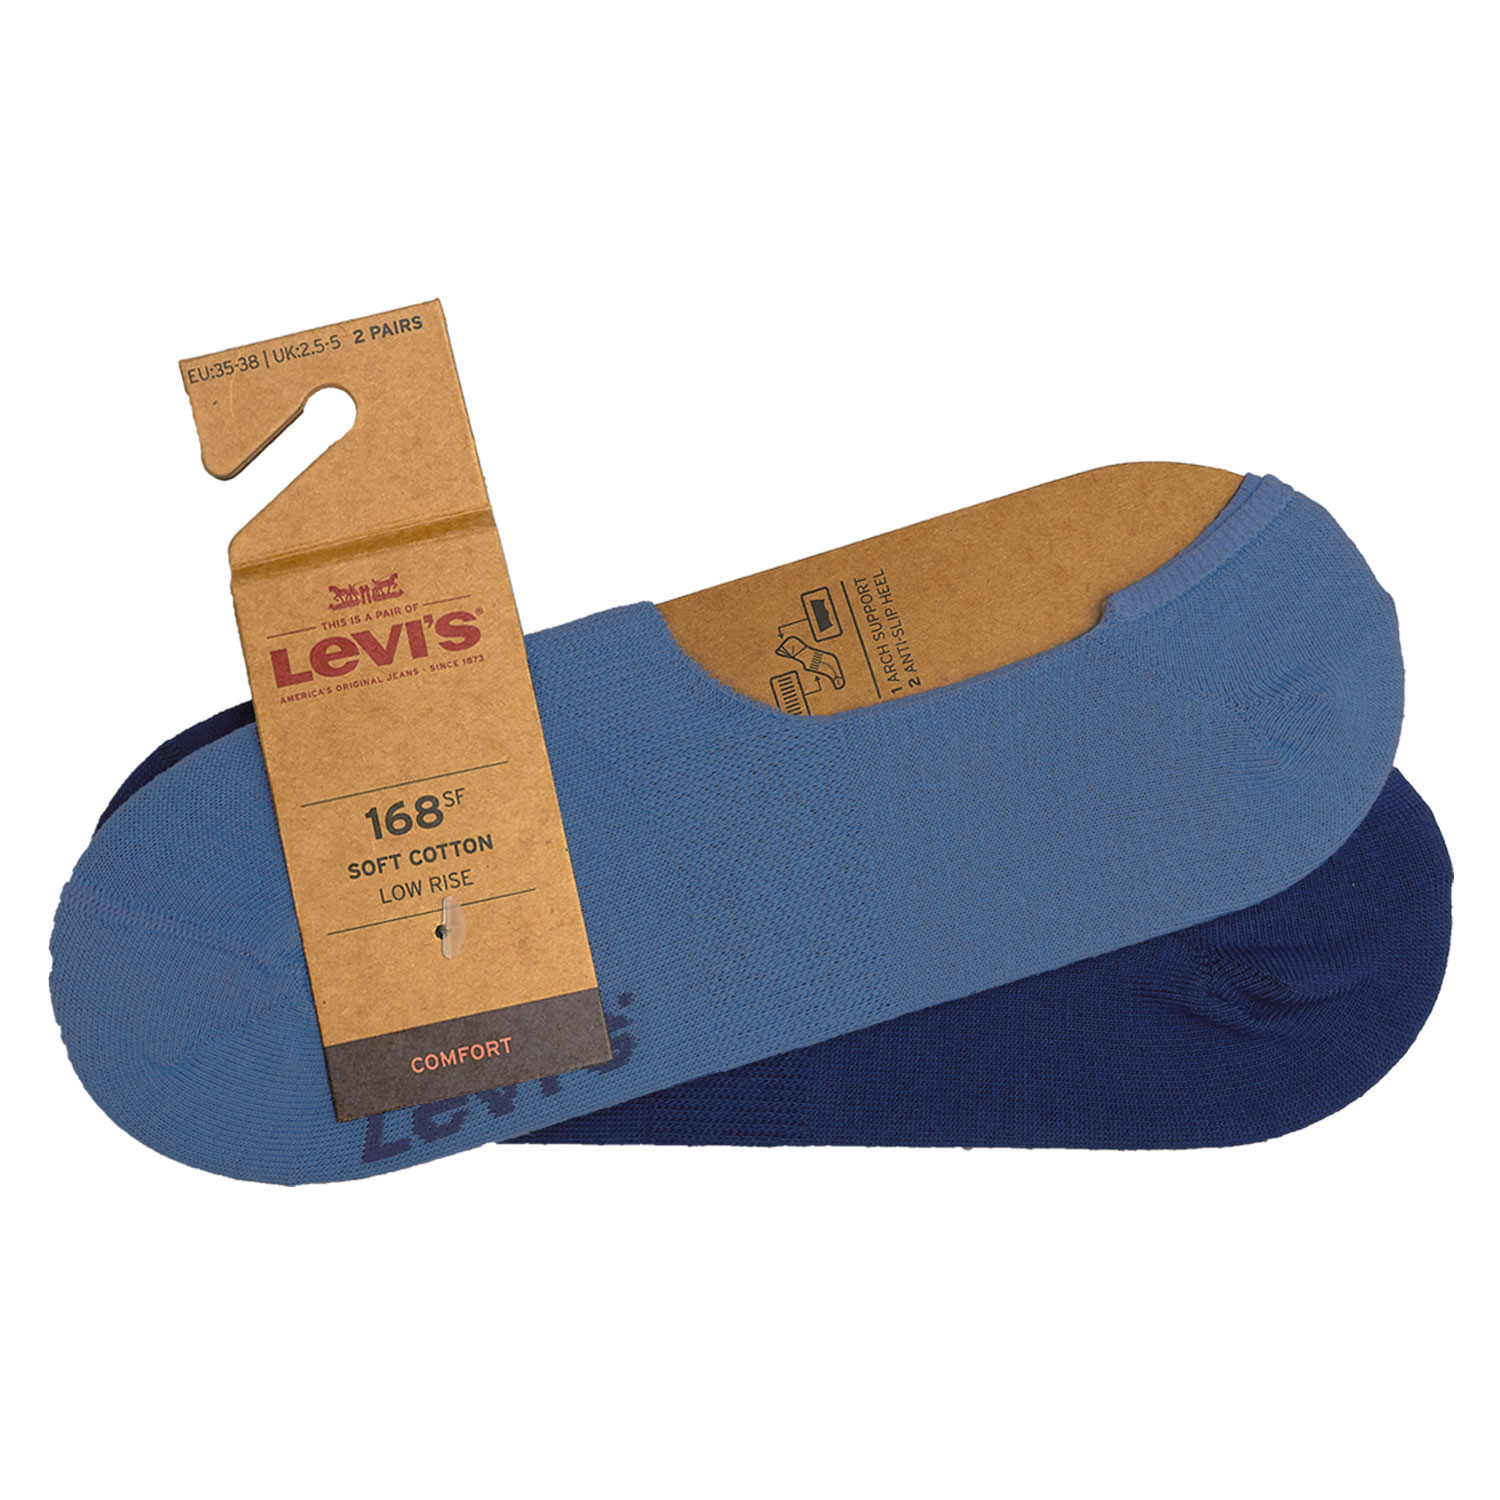 Levi's Füßlinge 8 Paar Low Rise Soft Cotton 943001001 Sneaker Footies Levis – Bild 4